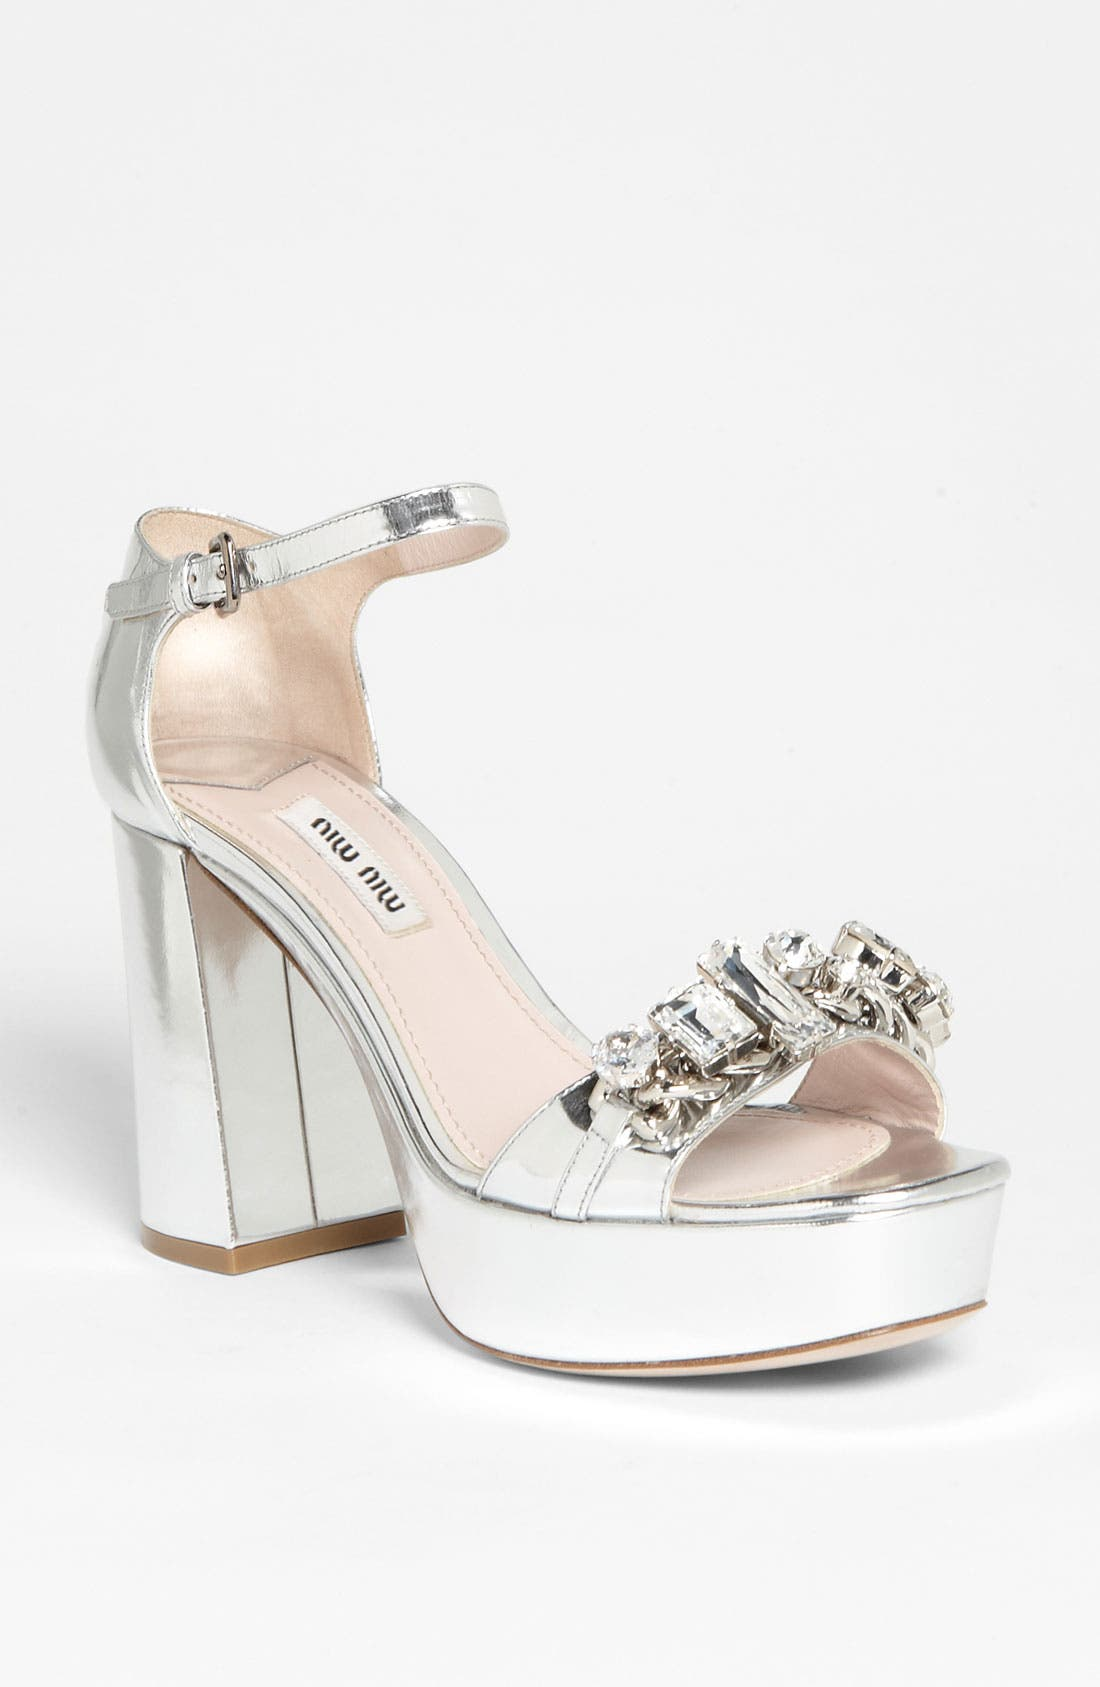 Alternate Image 1 Selected - Miu Miu Crystal Block Heel Sandal